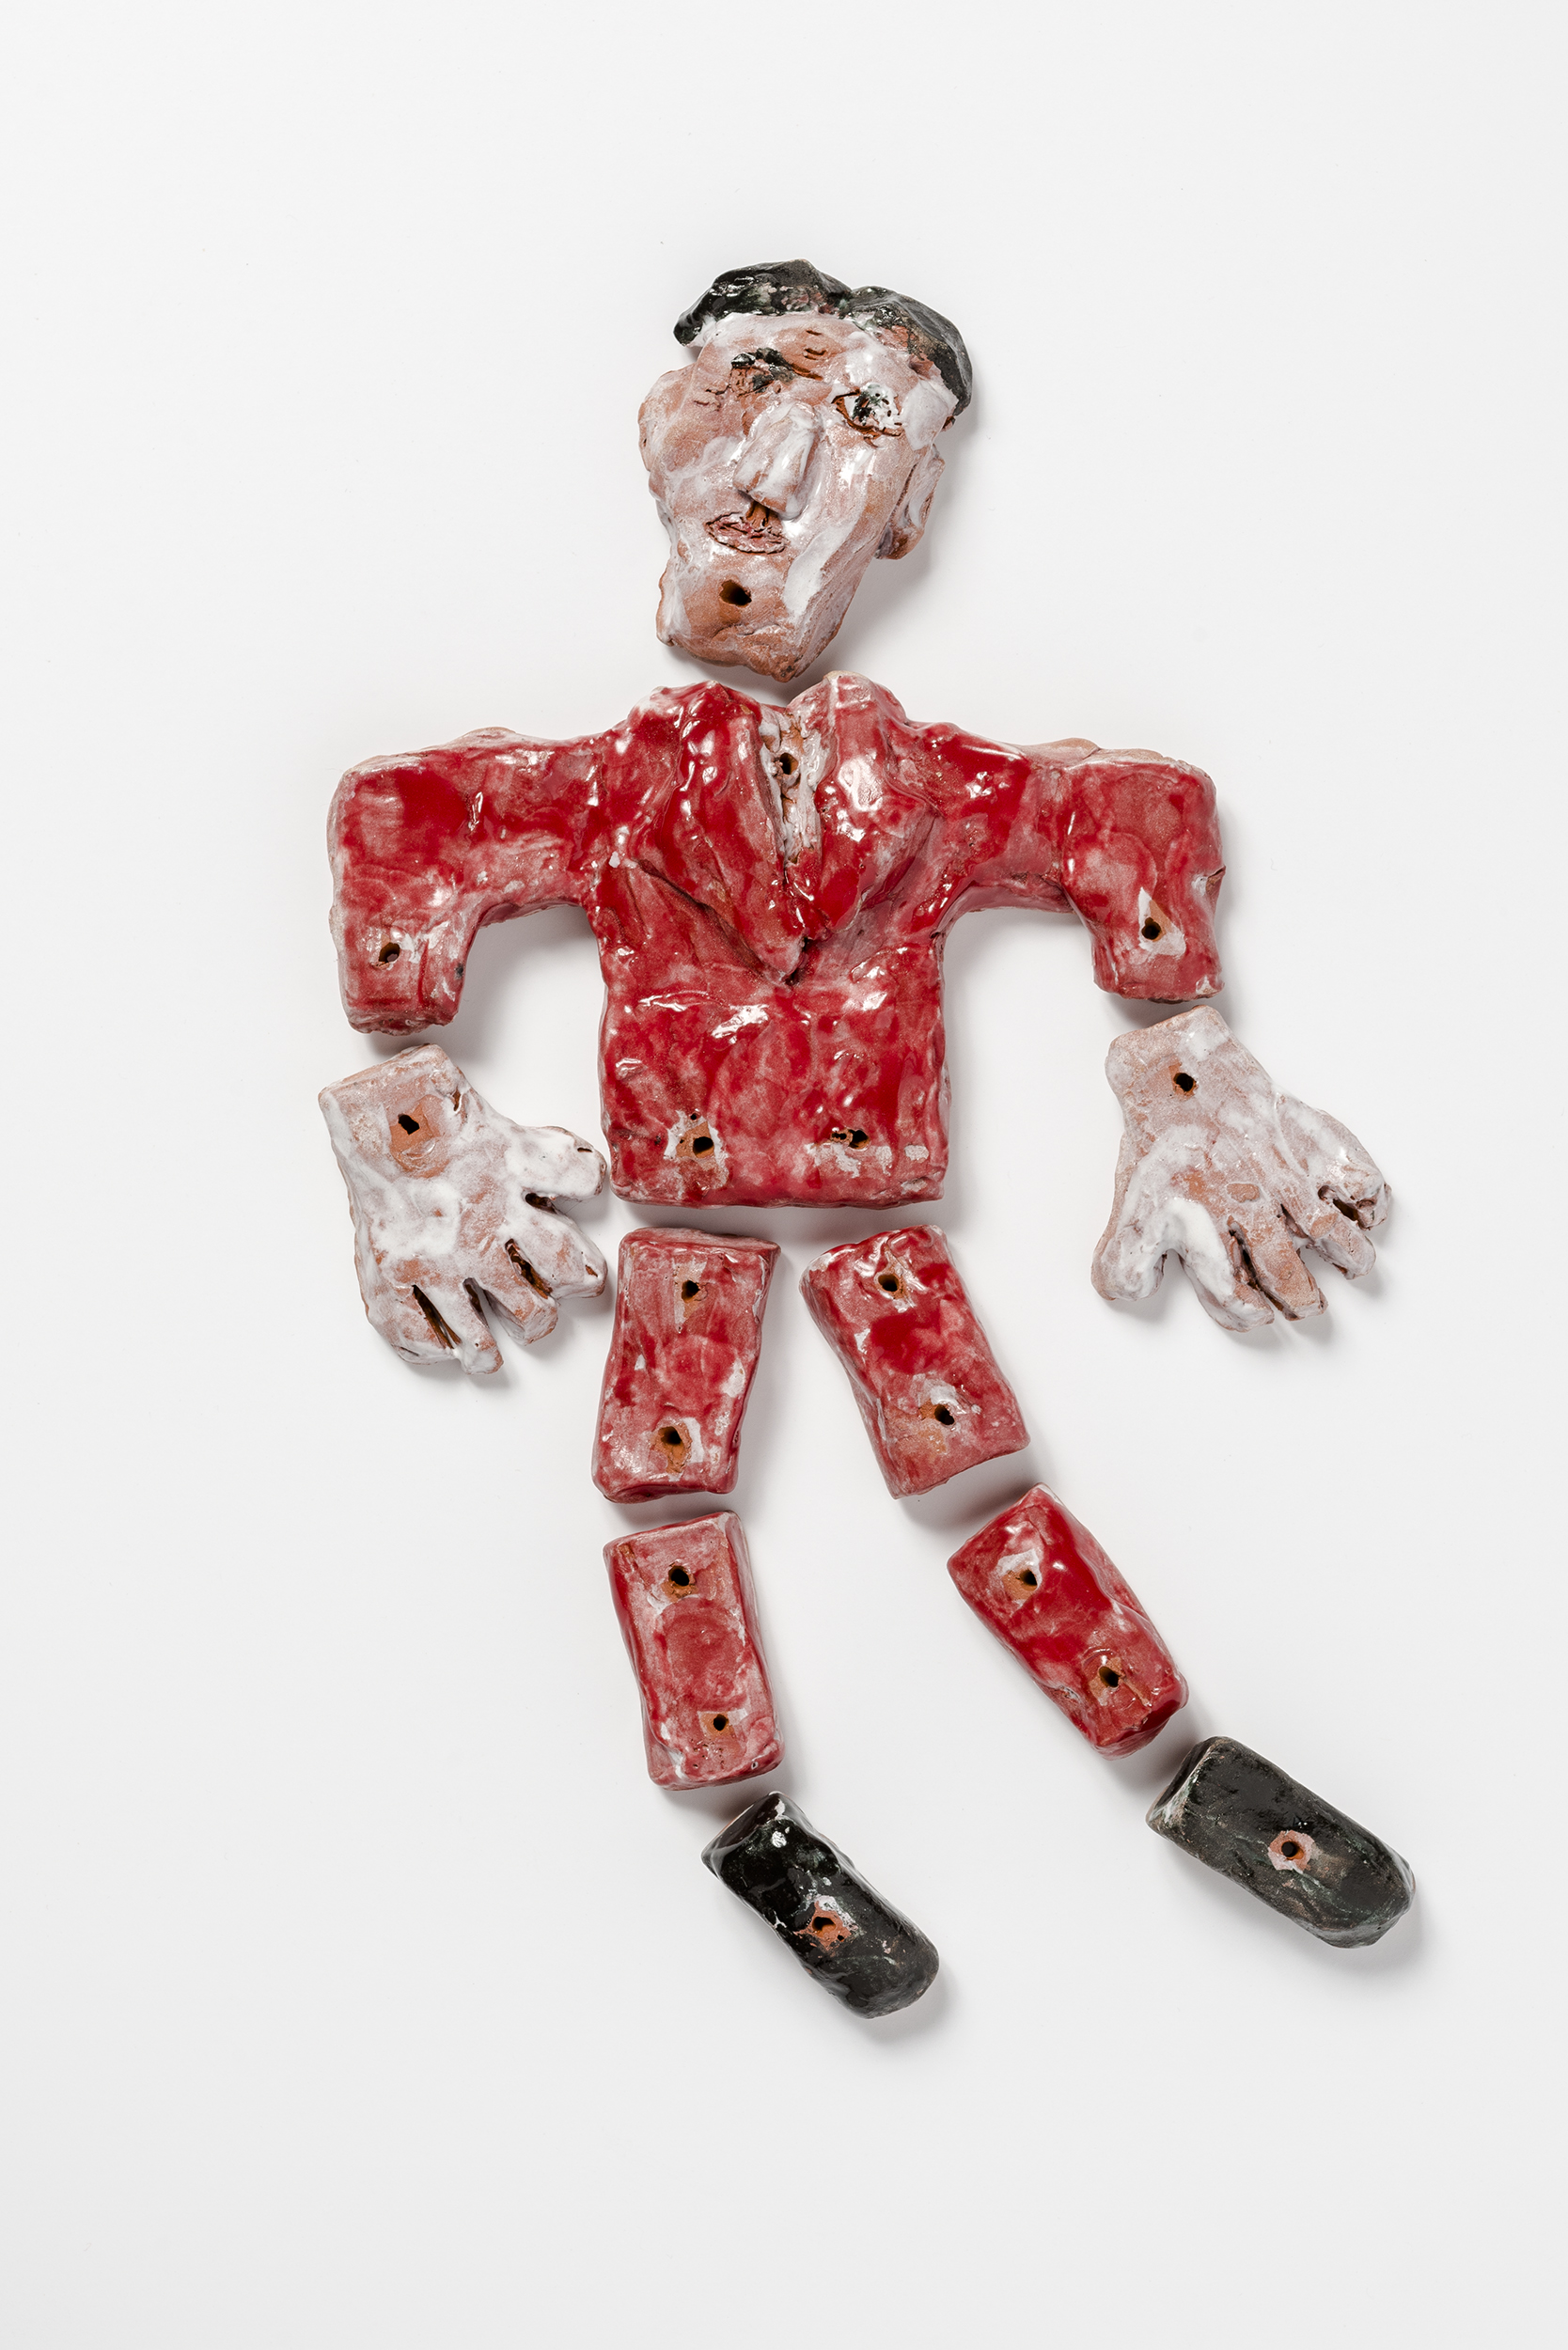 Puppet Man with Red Jacket